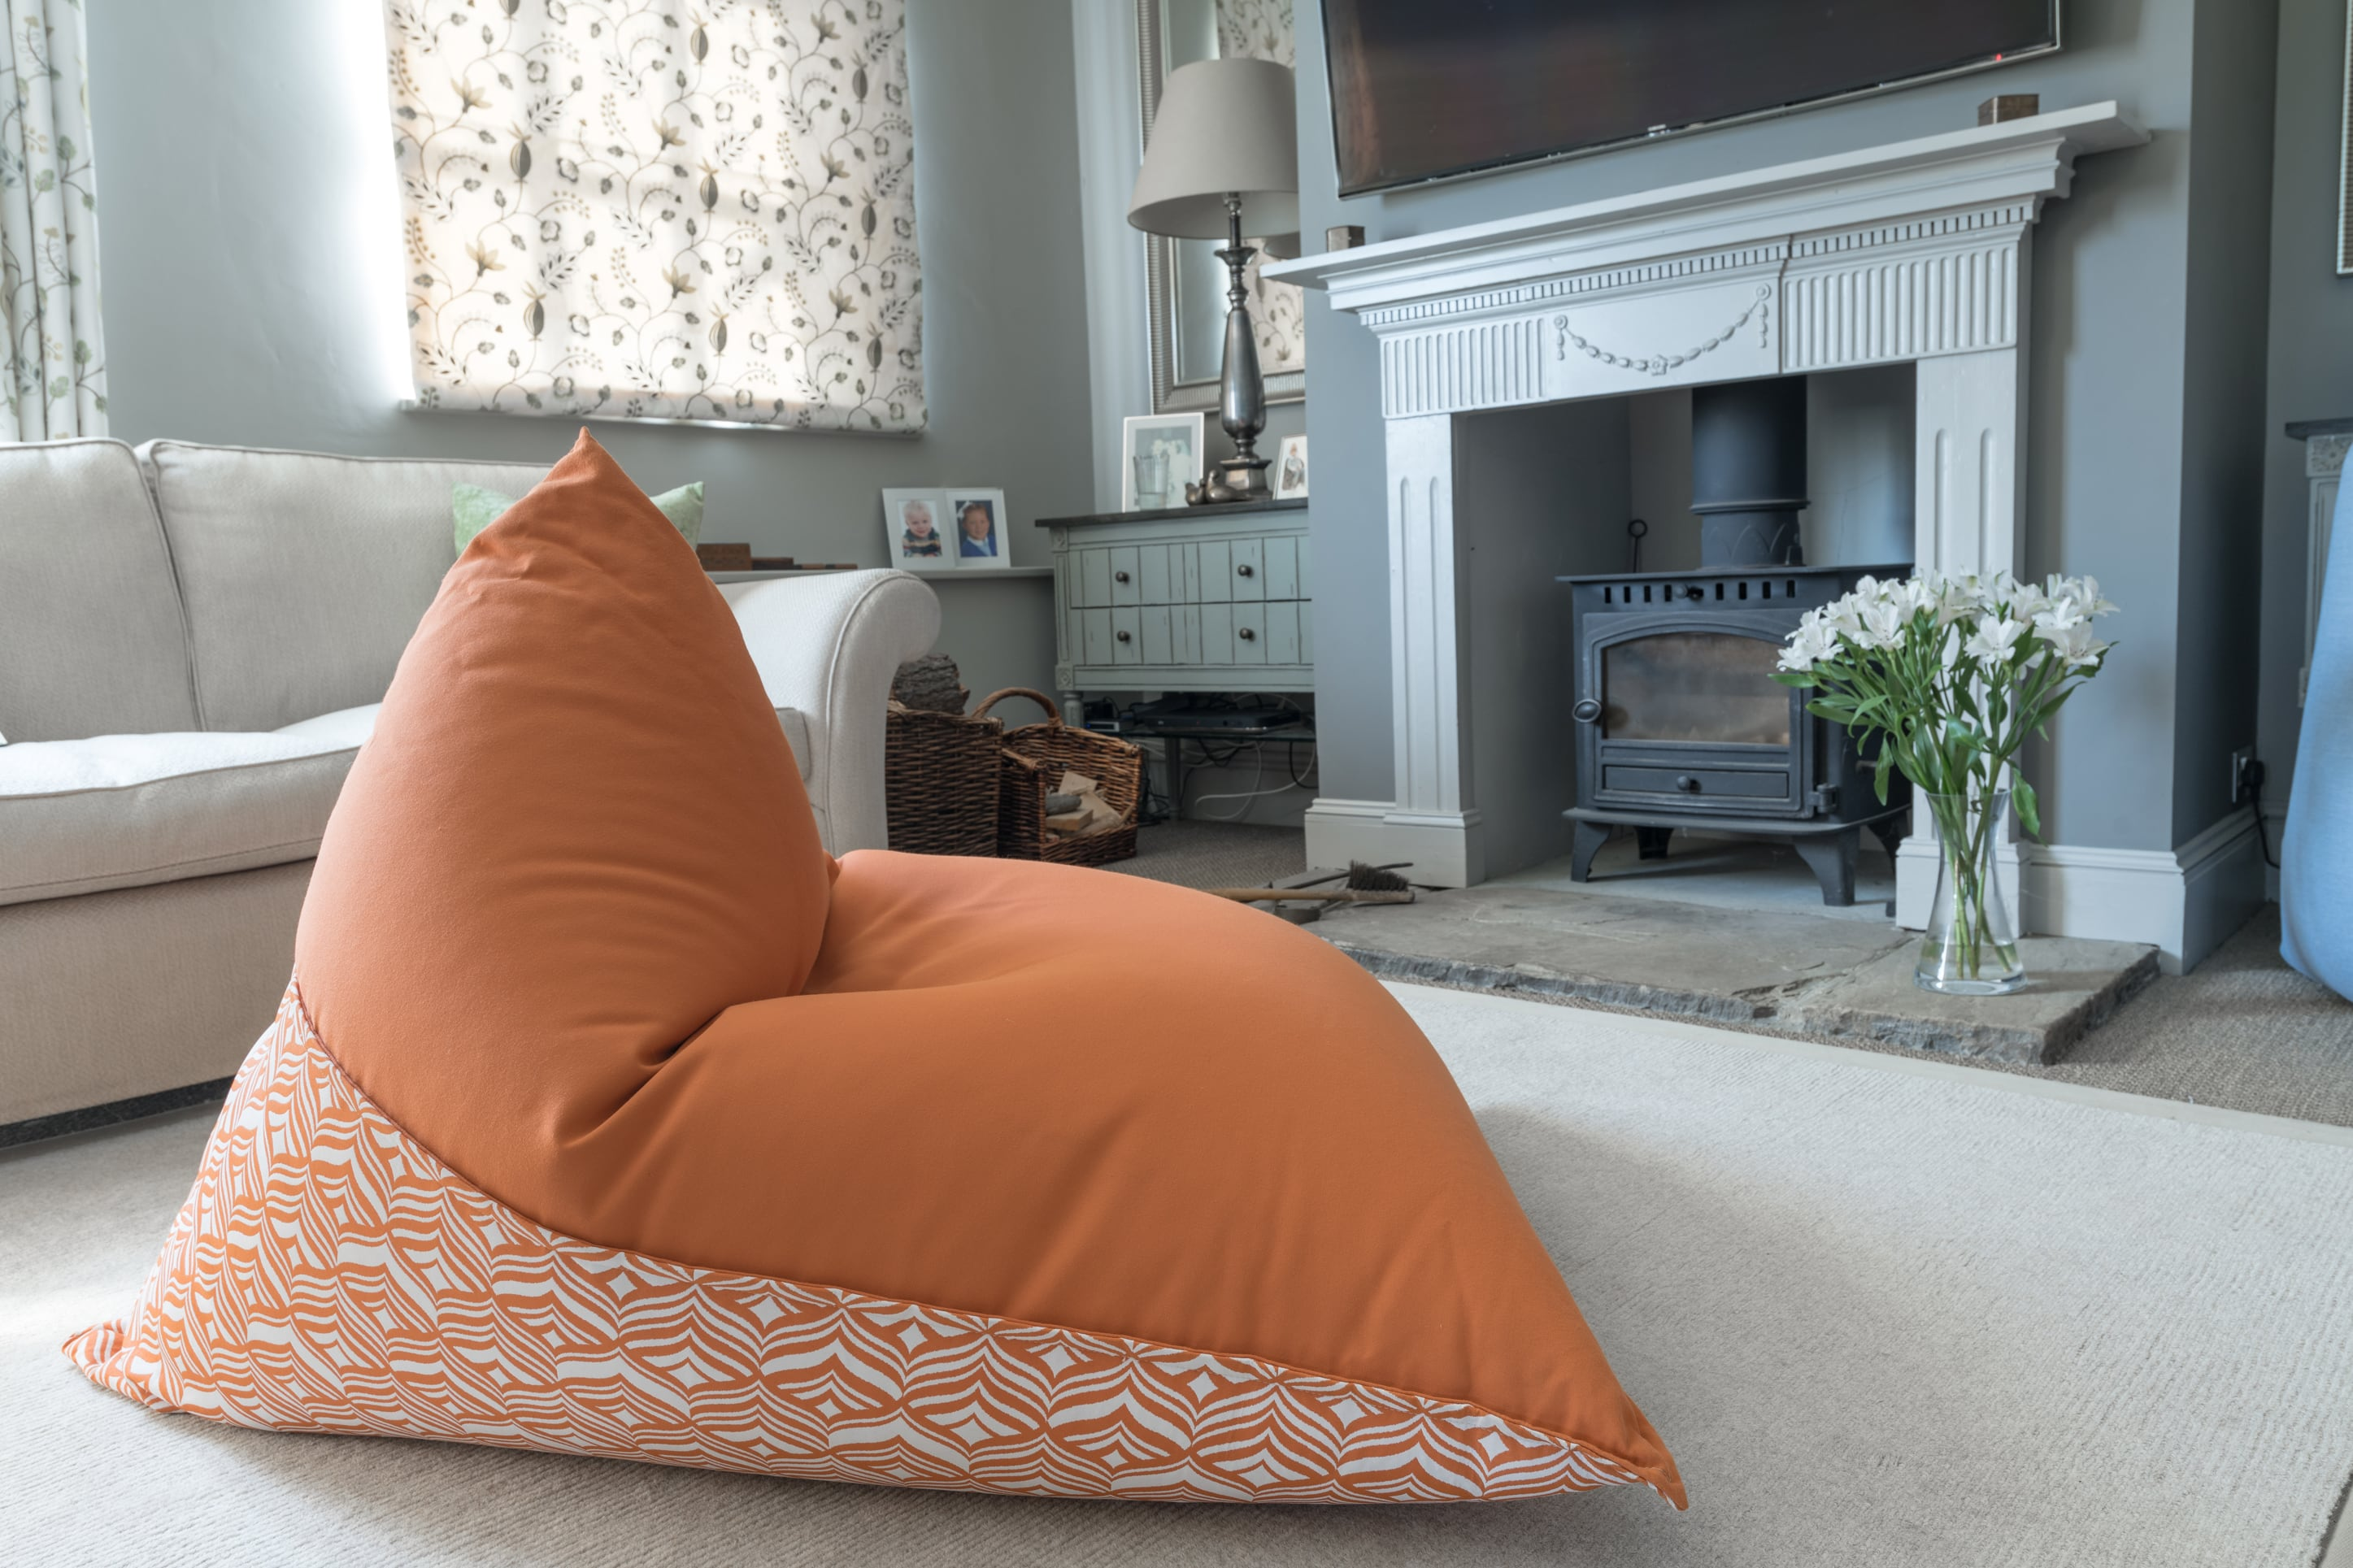 Armadillo Sun bean bag chair in orange and white tulip pattern indoors by fireplace